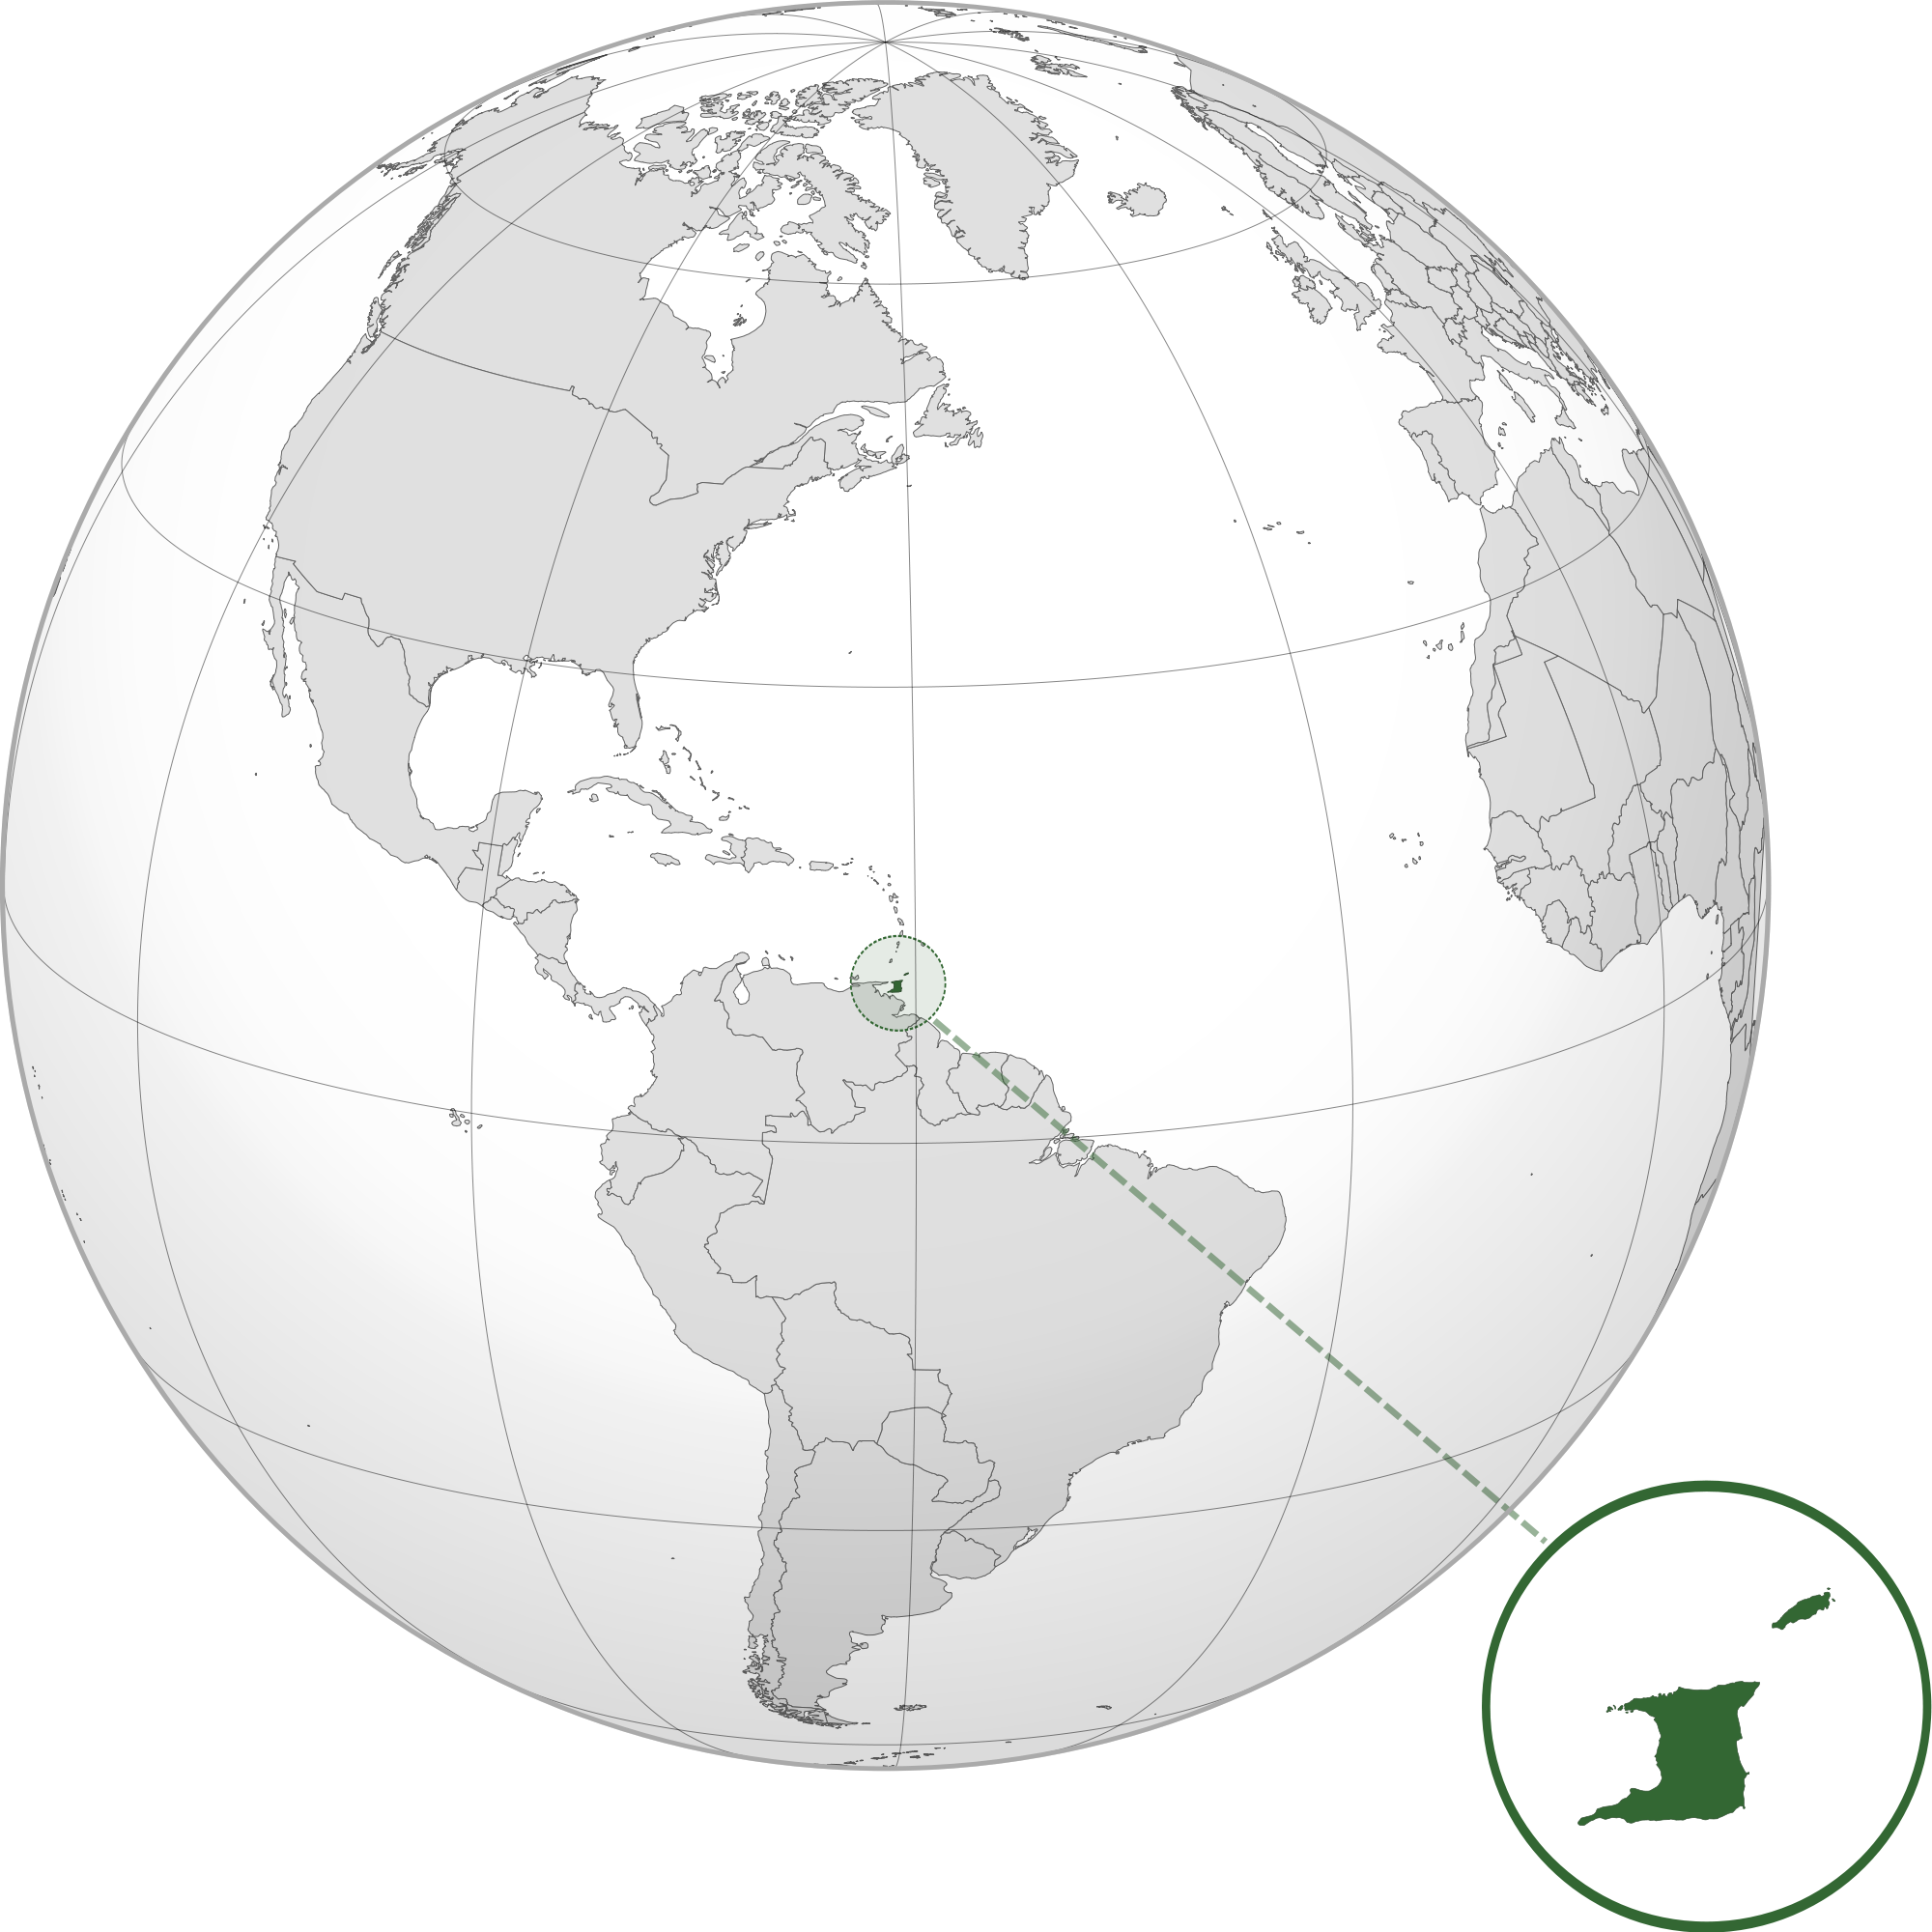 Location of the Trinidad and Tobago in the World Map